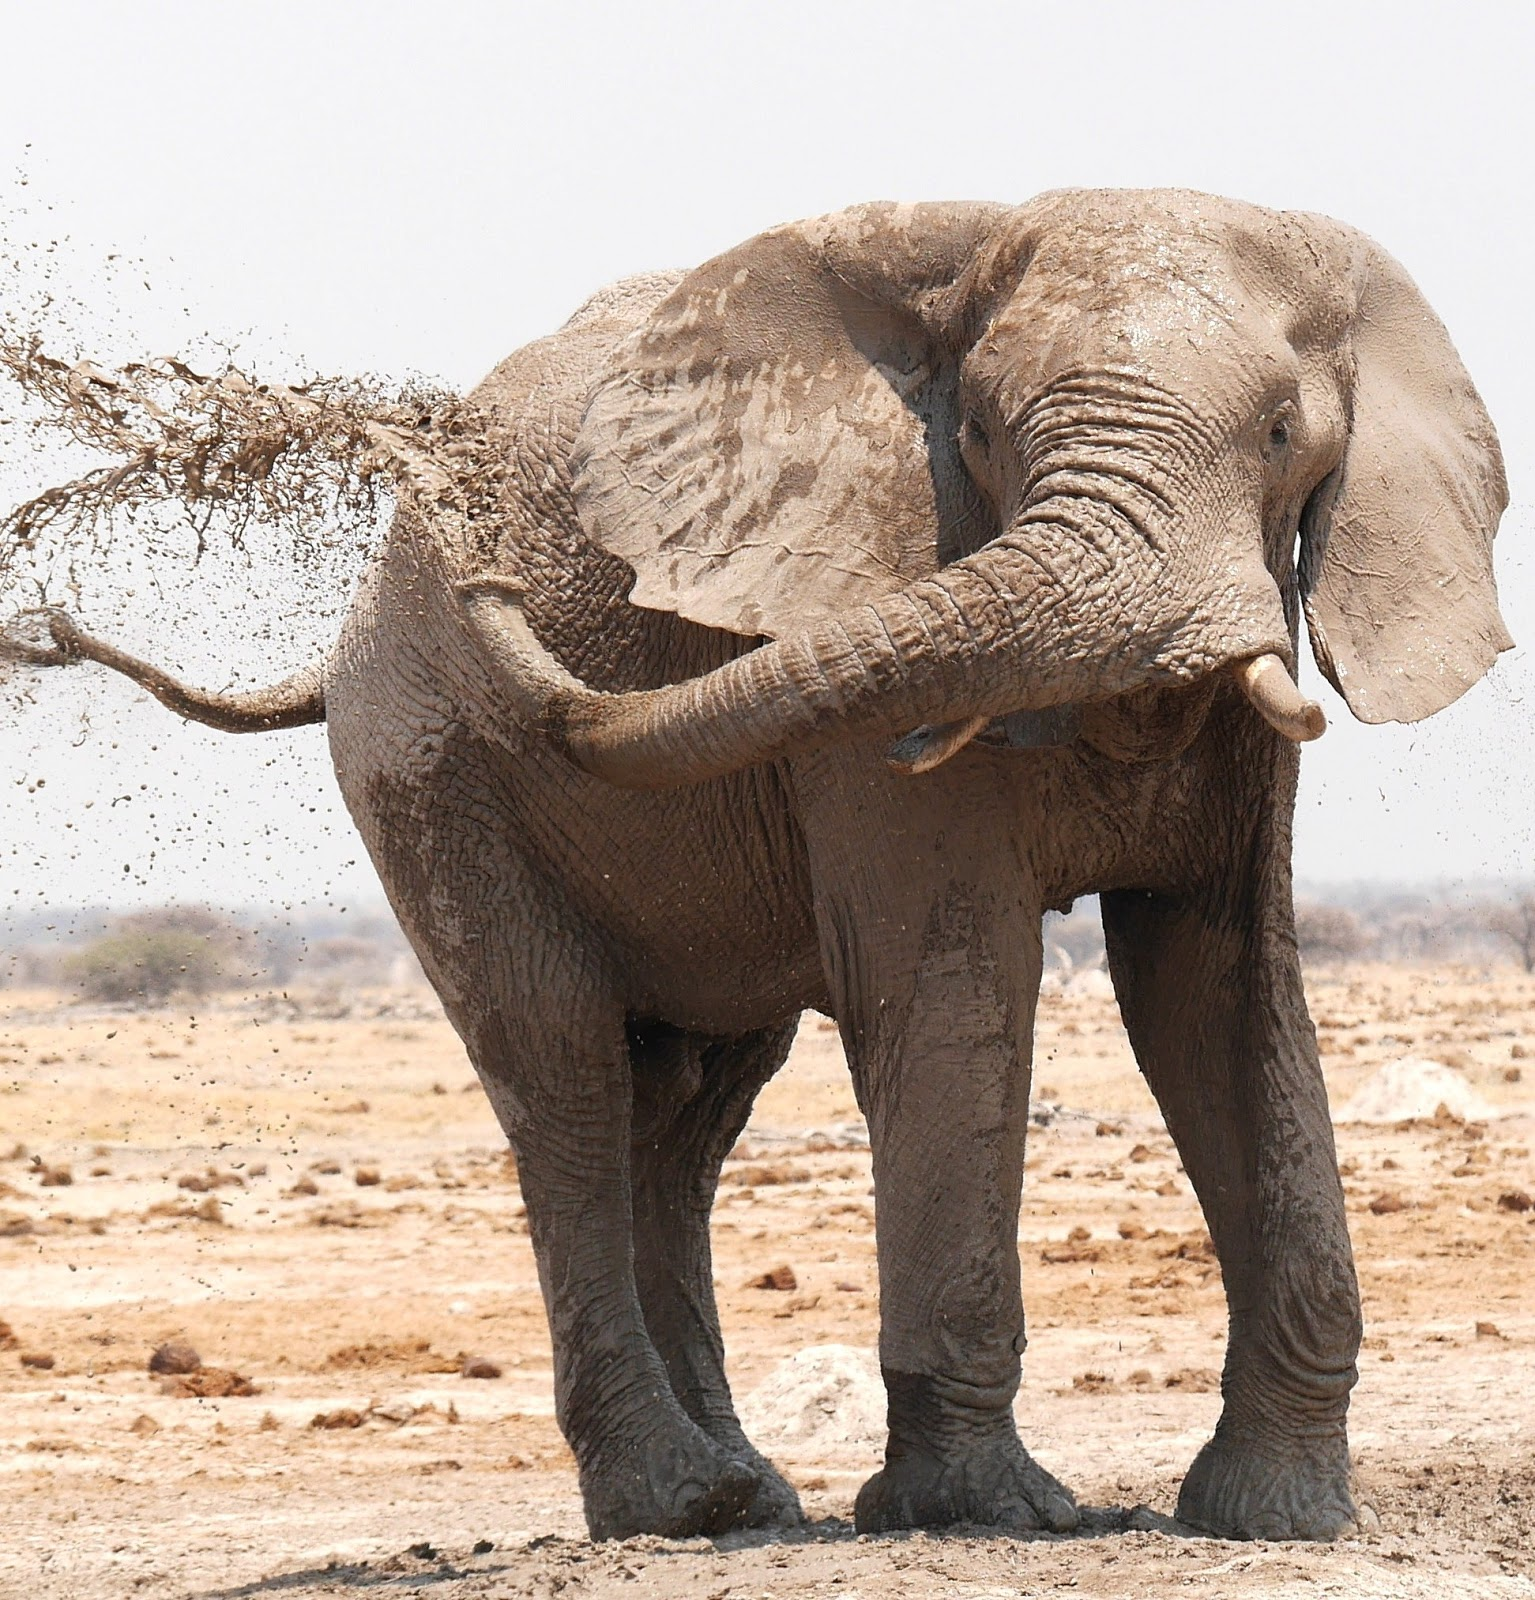 An elephant spraying mud on itself.